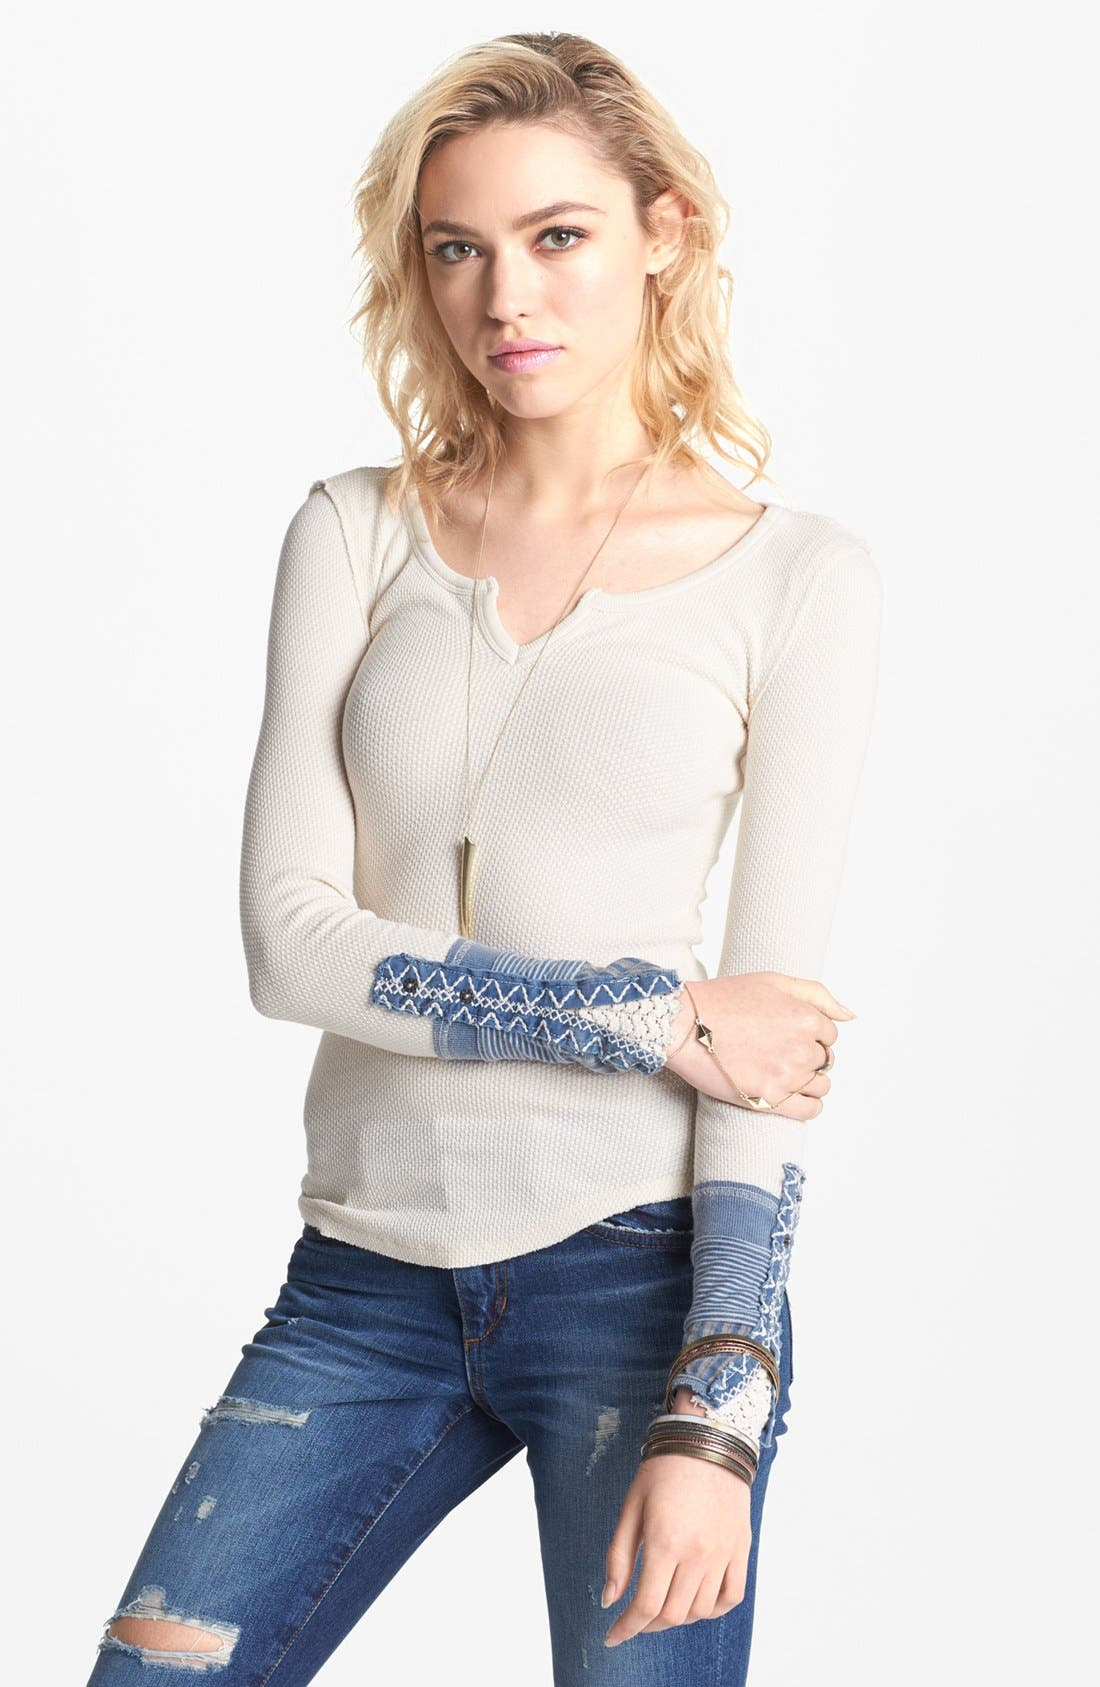 Alternate Image 1 Selected - Free People 'Kyoto' Embellished Cuff Tee